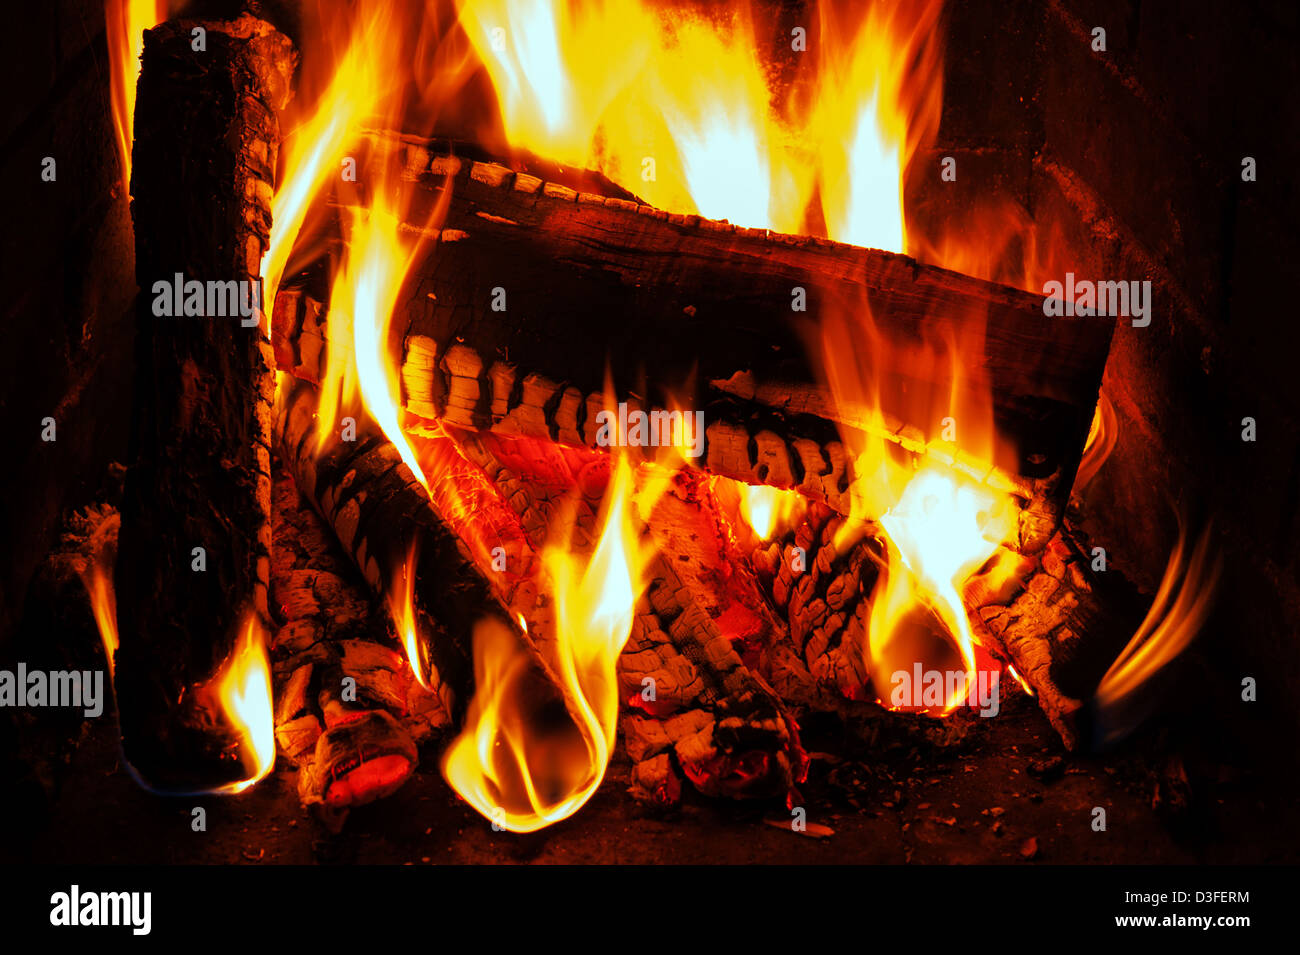 fireplace with oak firewood and flame - Stock Image